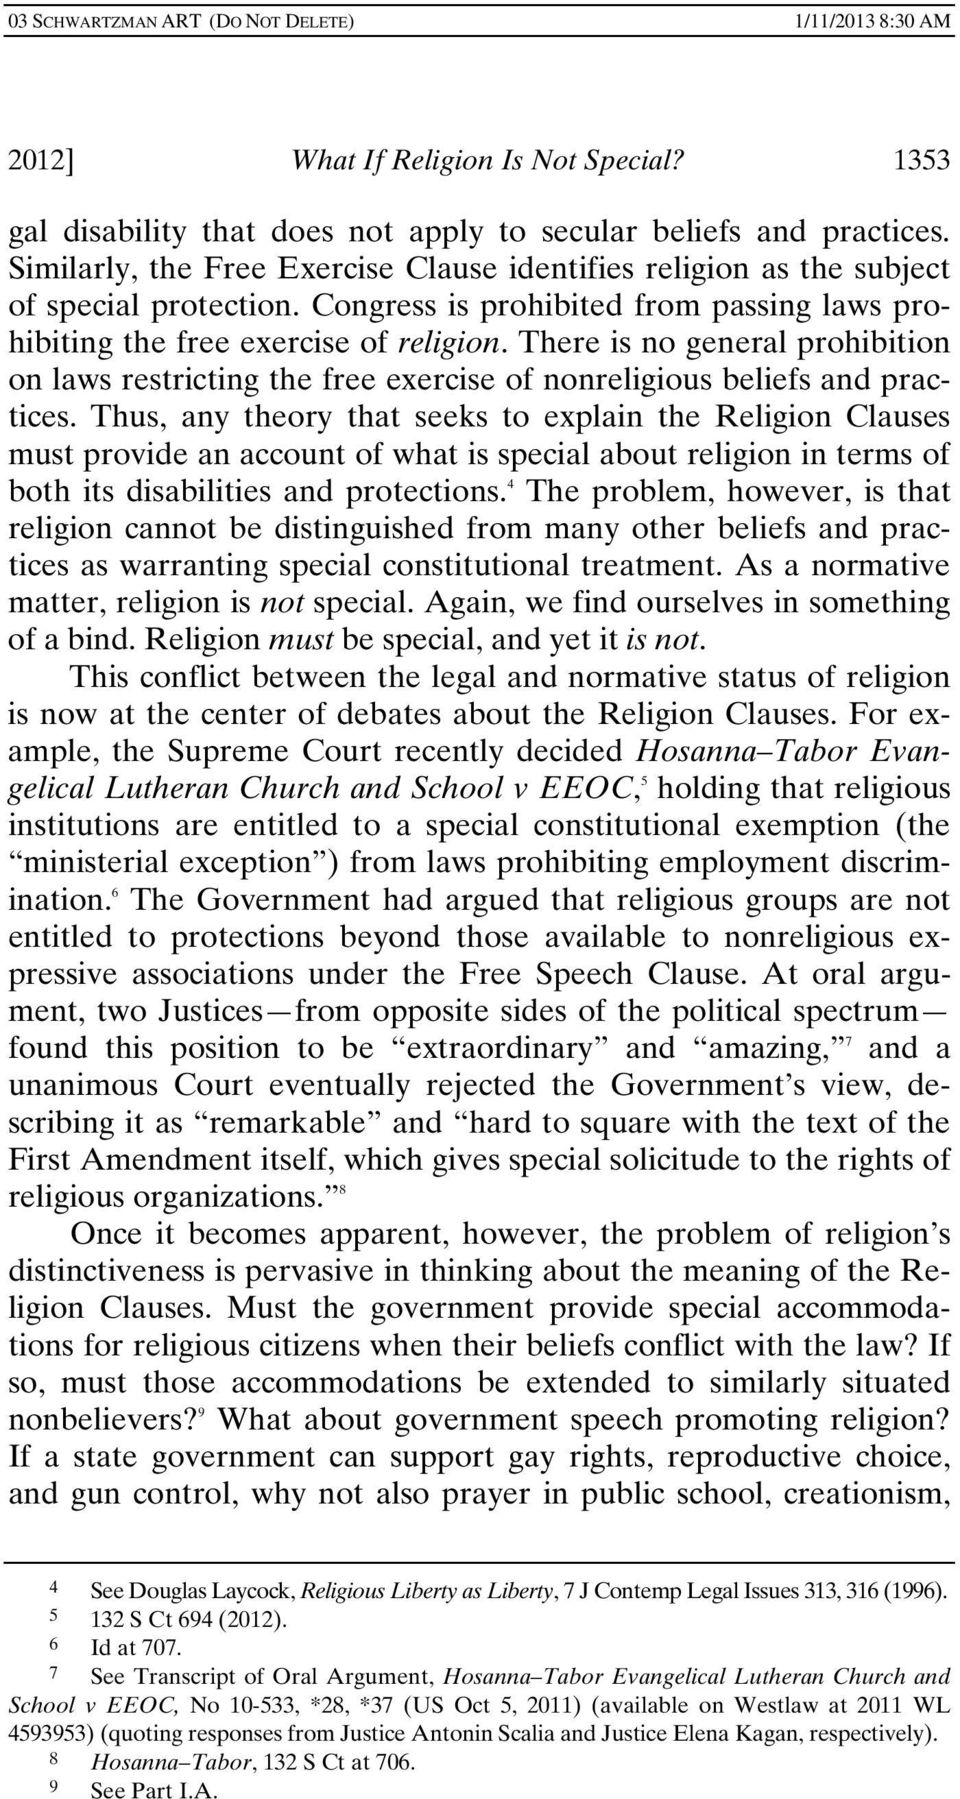 There is no general prohibition on laws restricting the free exercise of nonreligious beliefs and practices.